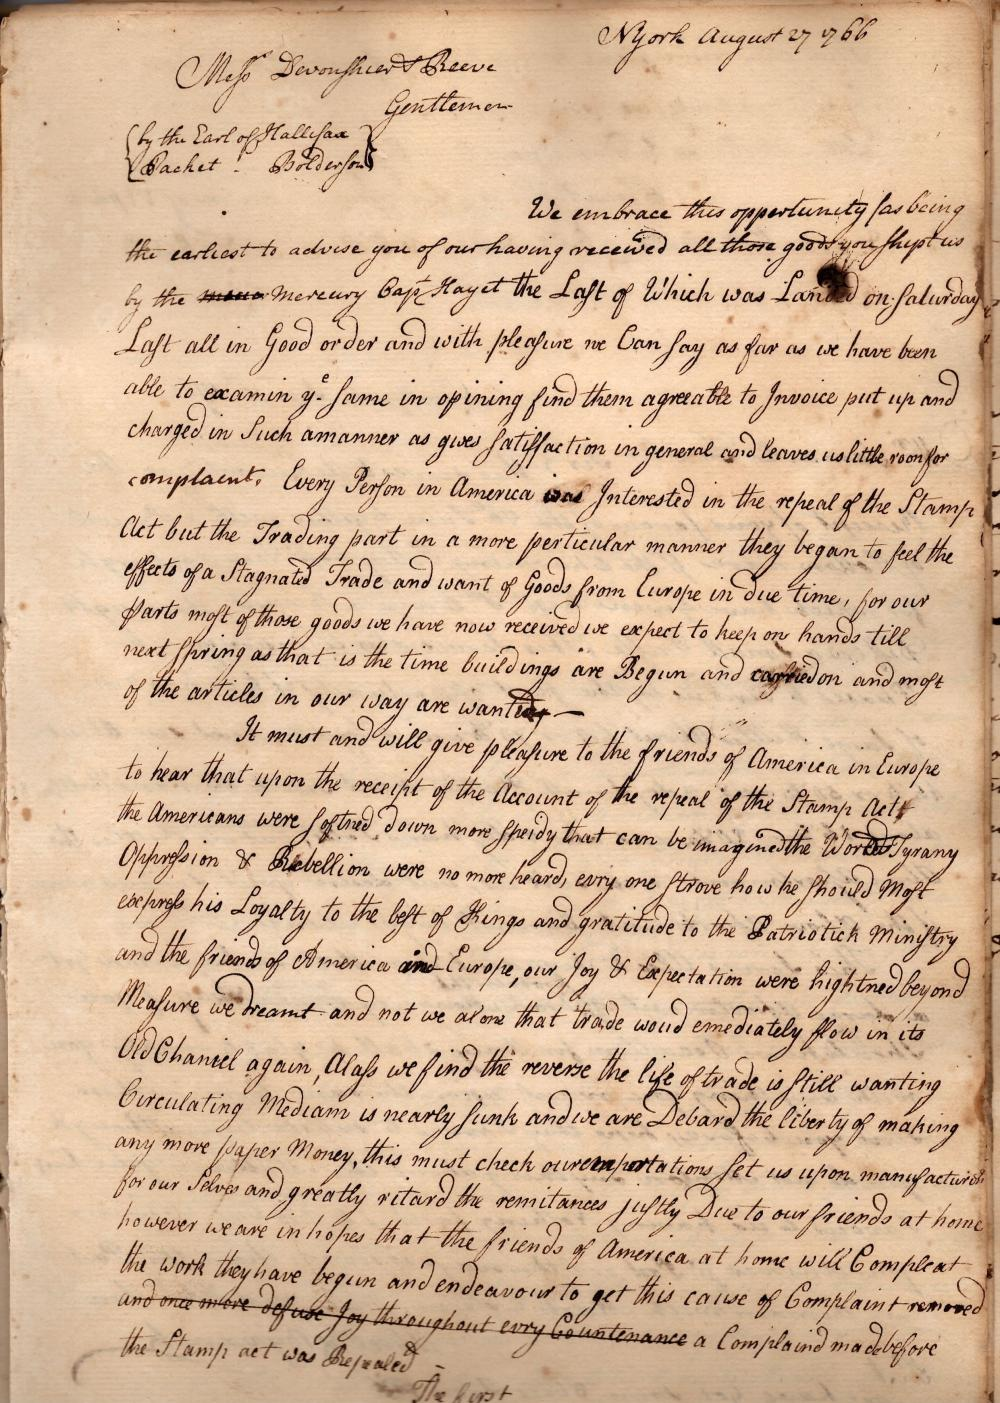 Iron Merchants Archive 150 Items and Journals Related to Stamp Act and Slavery, c. 1765-1825 Fantastic!